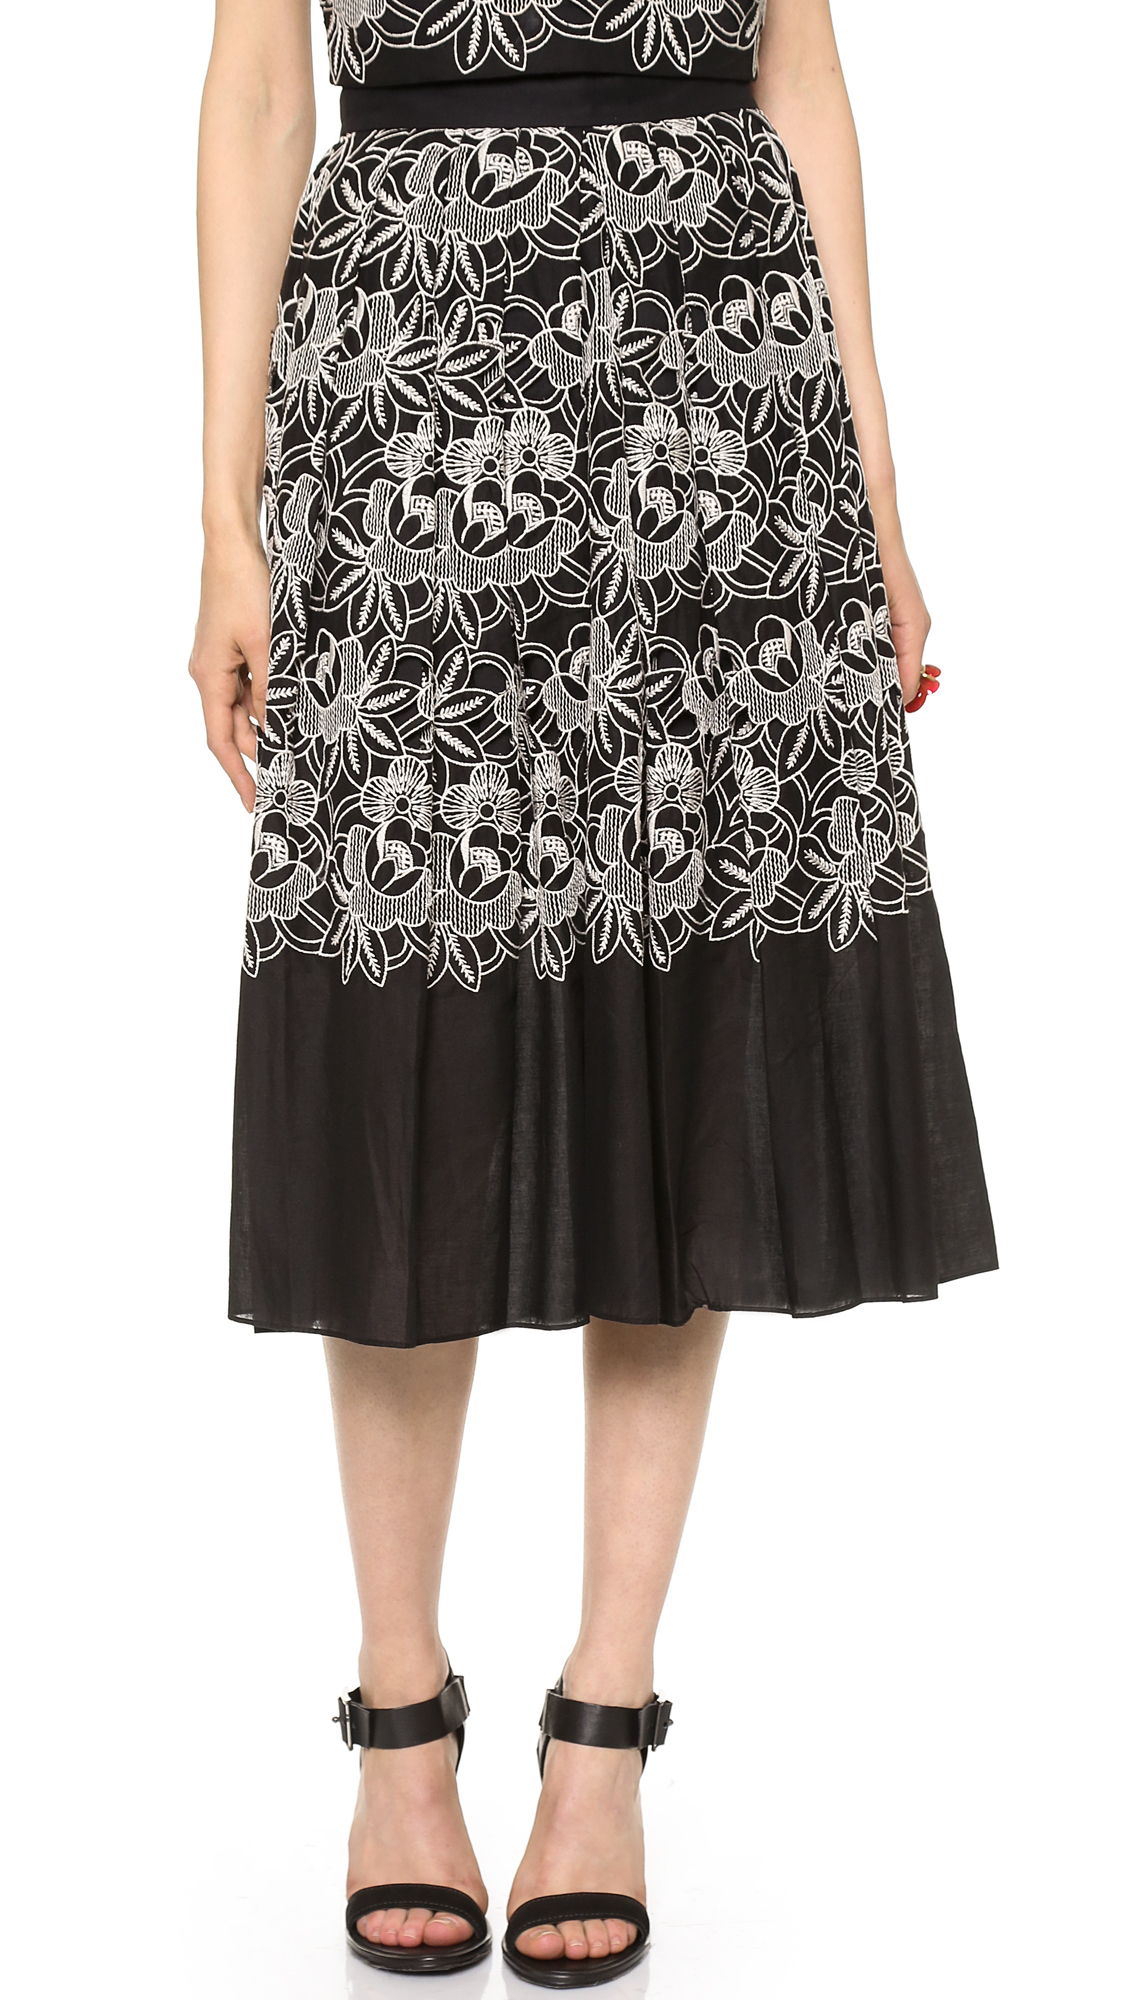 Black Eyelet Skirt: Travel. This loft eyelet ruffle wrap skirt was my gateway black eyelet skirt. The ruffle and wrap detail were what sold me. Both were just so feminine that it got me to reconsider a black skirt for summer.